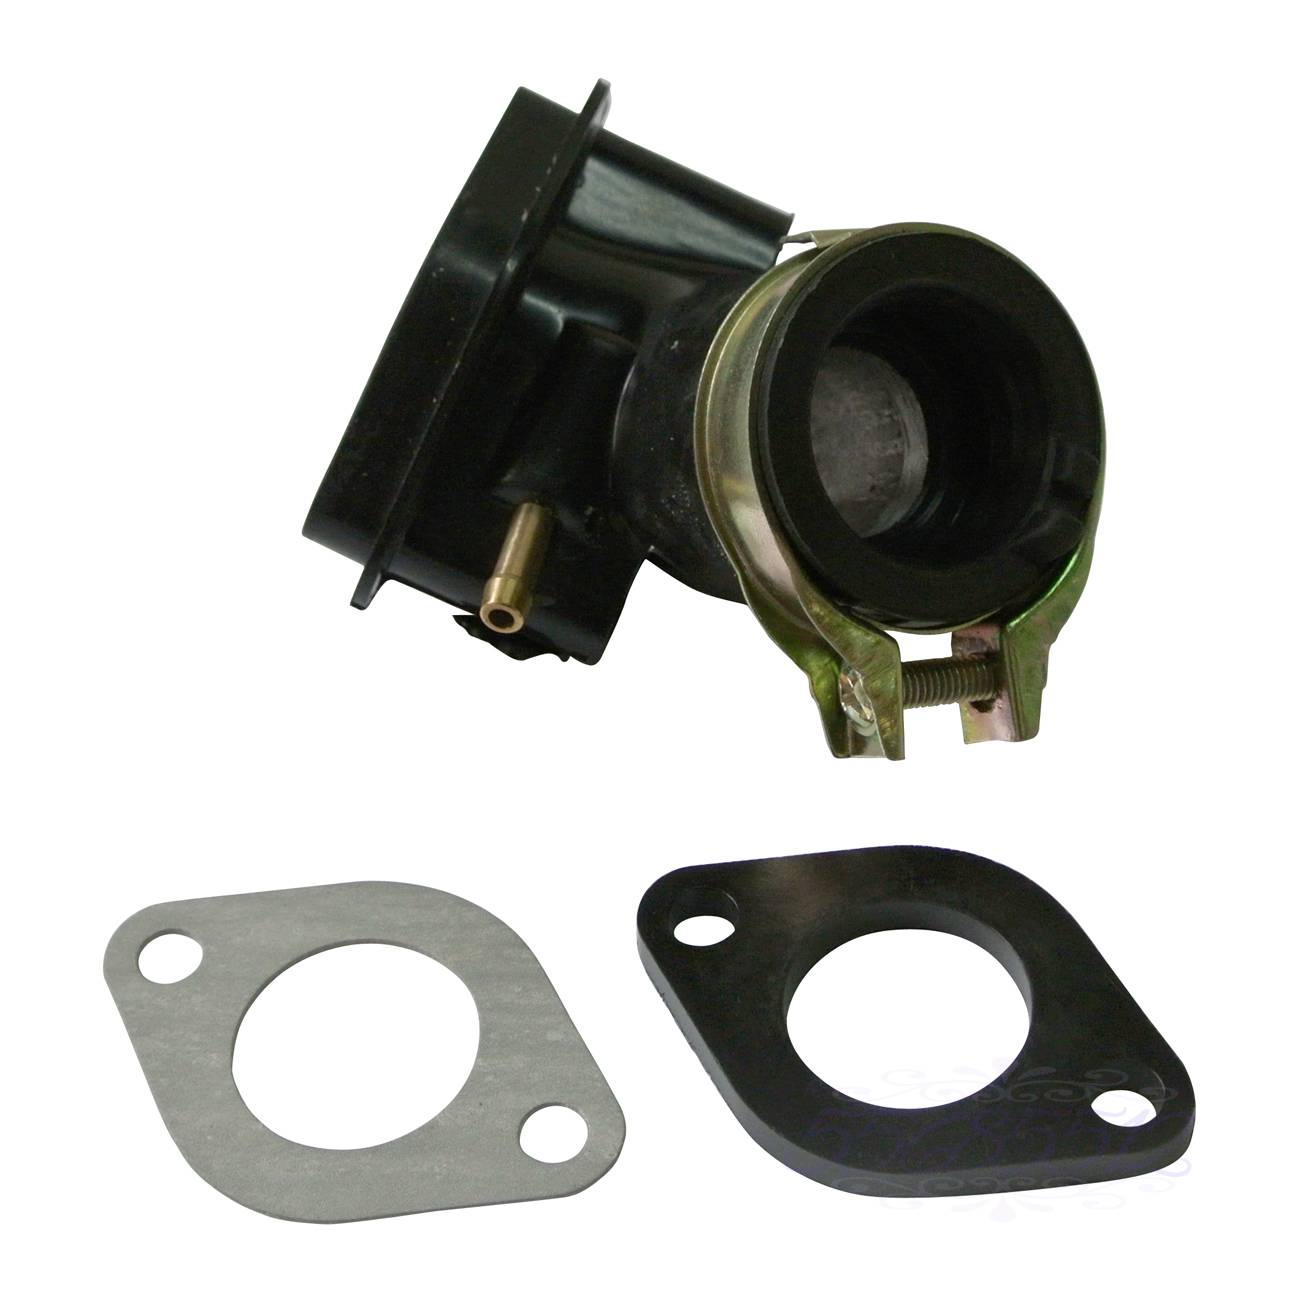 Intake Manifold Inlet Pipe + Spacer For GY6 <font><b>50cc</b></font> SUNL Baotian Znen Jmstar Moped Scooter image